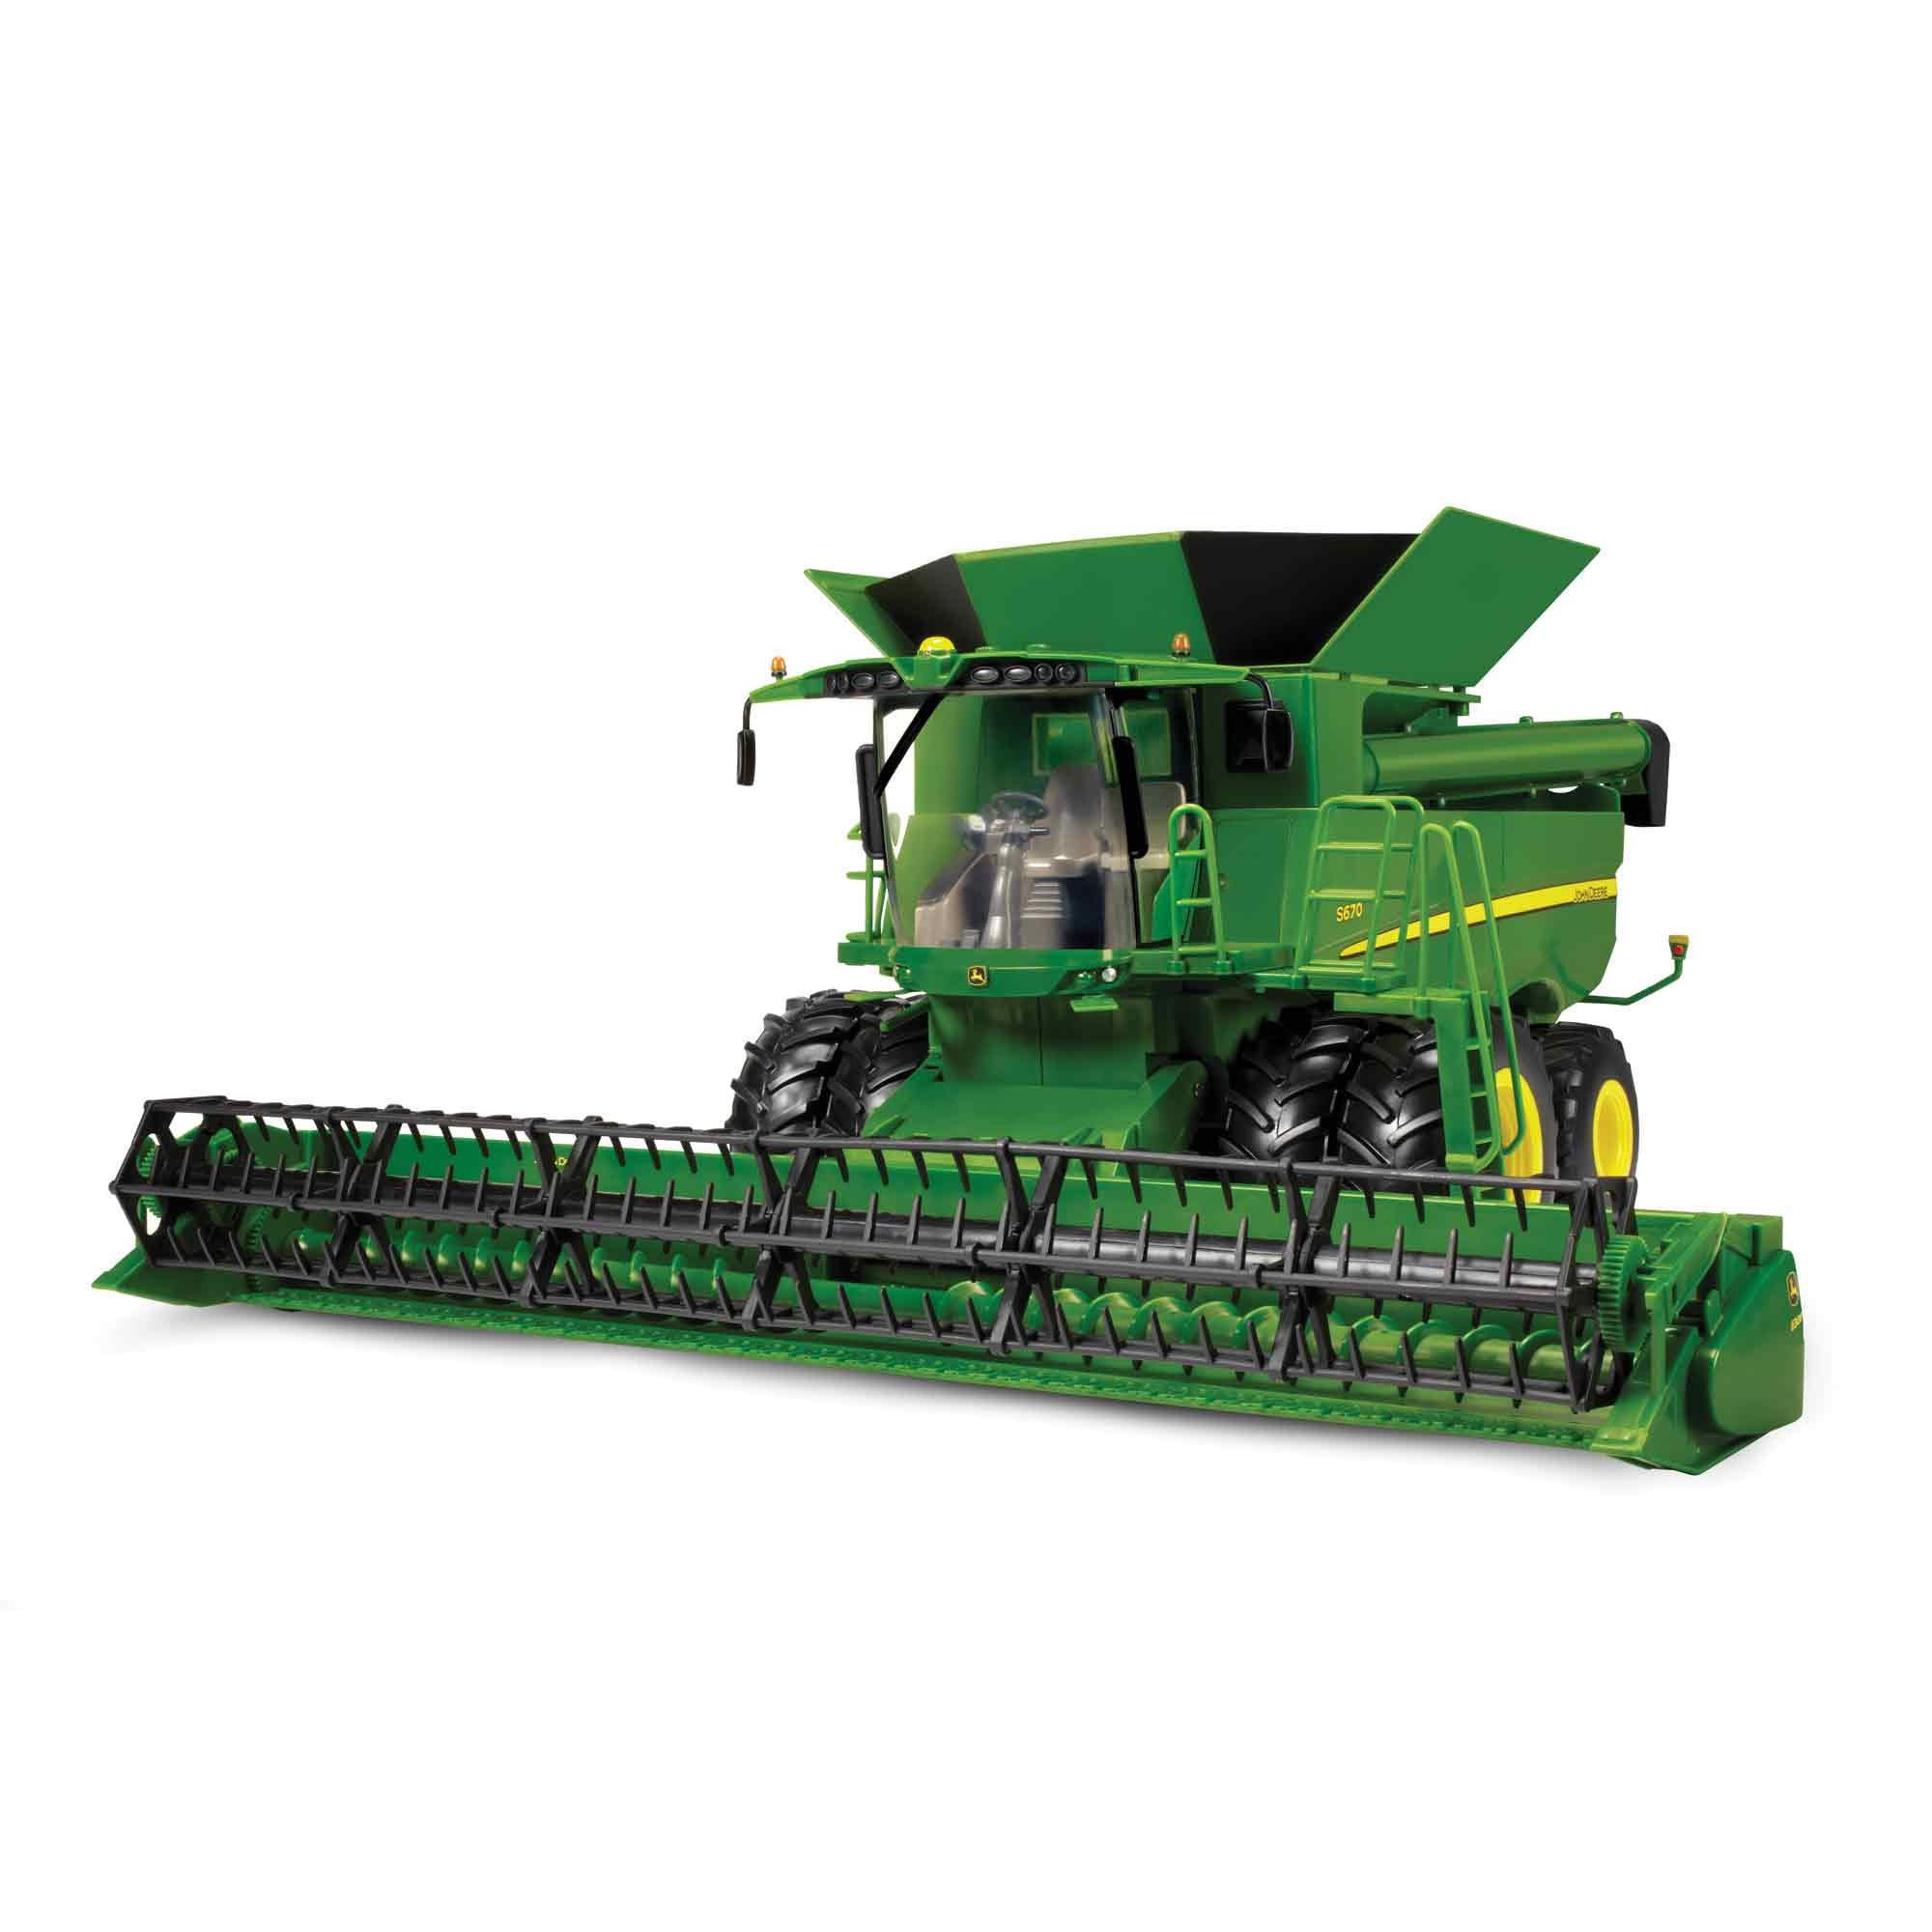 The grain head rotates when this John Deere S670 Combine is pushed ...